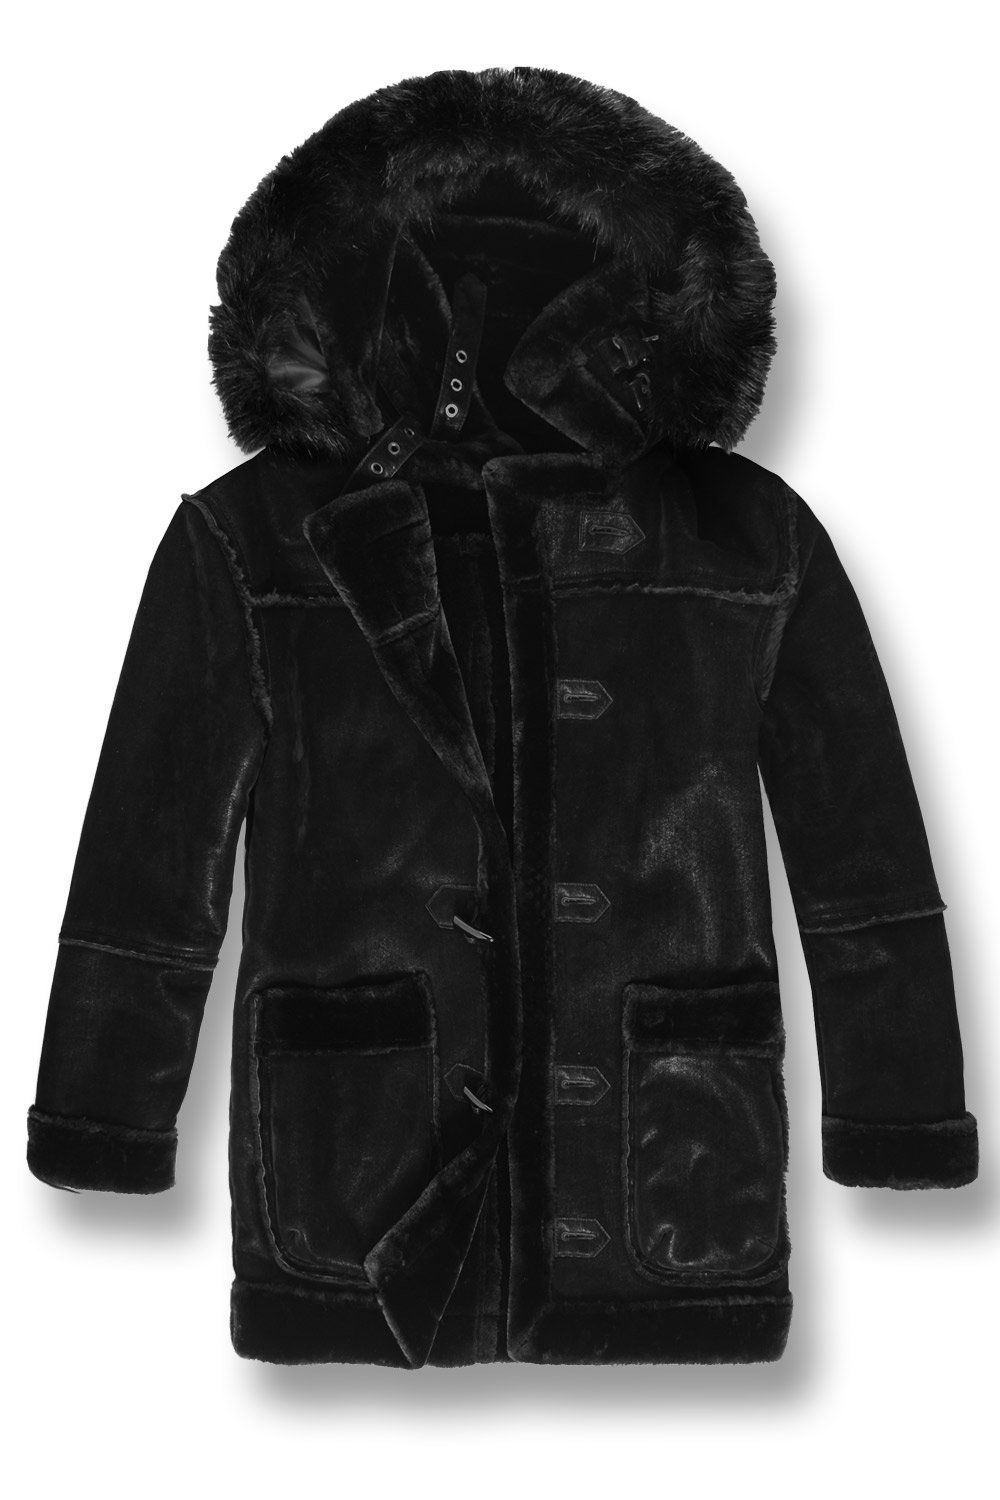 885597cd74 Coats & Jackets Authentic Jordan Craig Tuscany Striped Shearling Fur Winter  Jacket Clothing, Shoes & Accessories